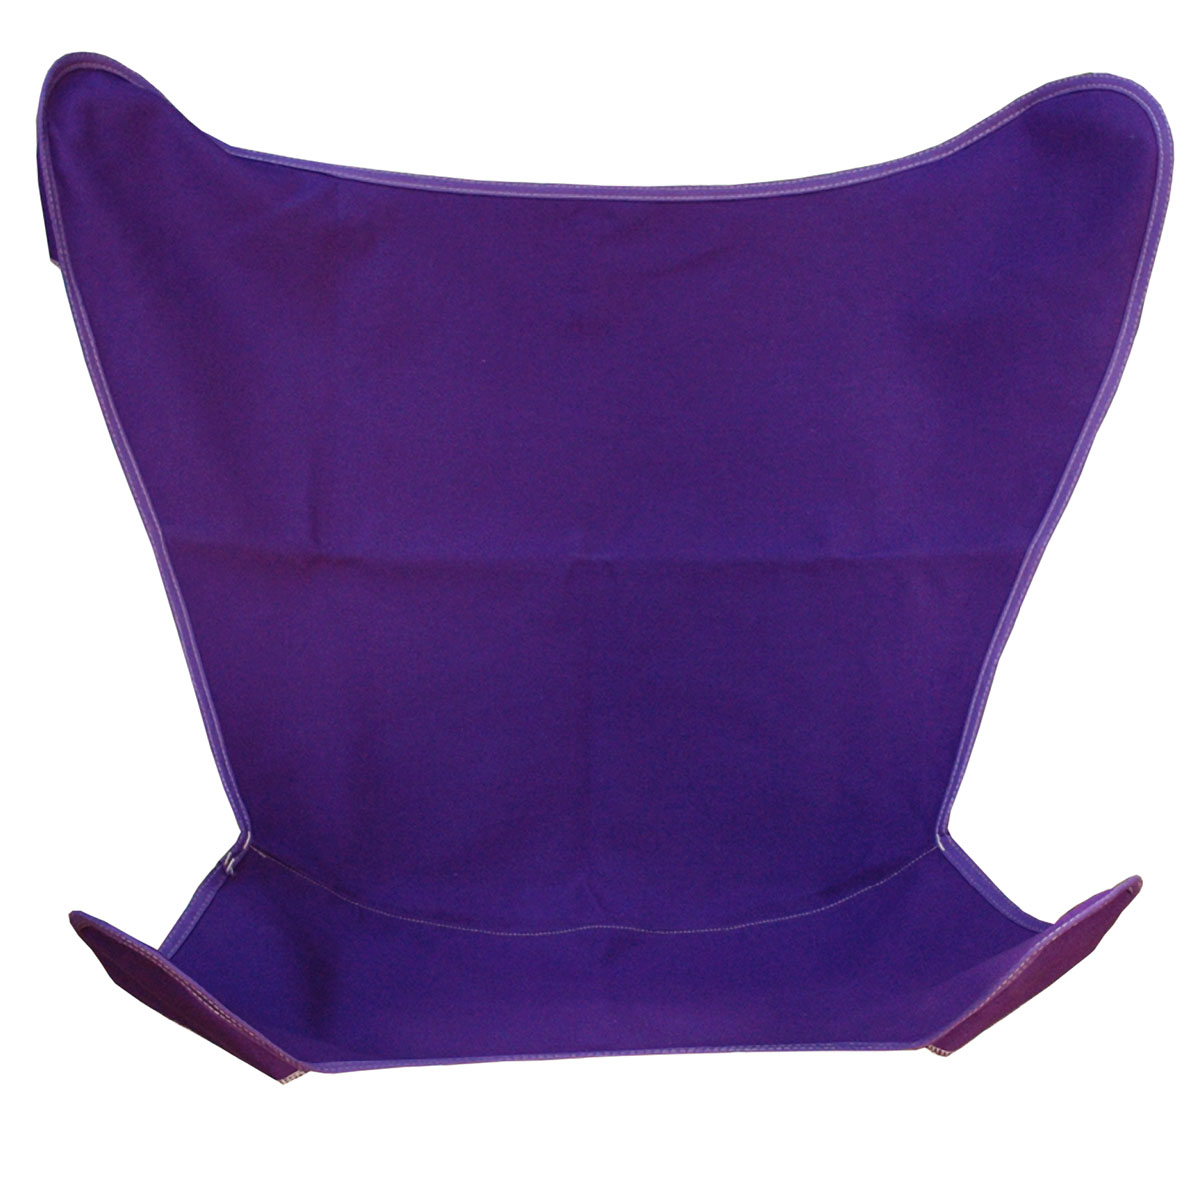 Replacement Cover for Butterfly Chair - Purple